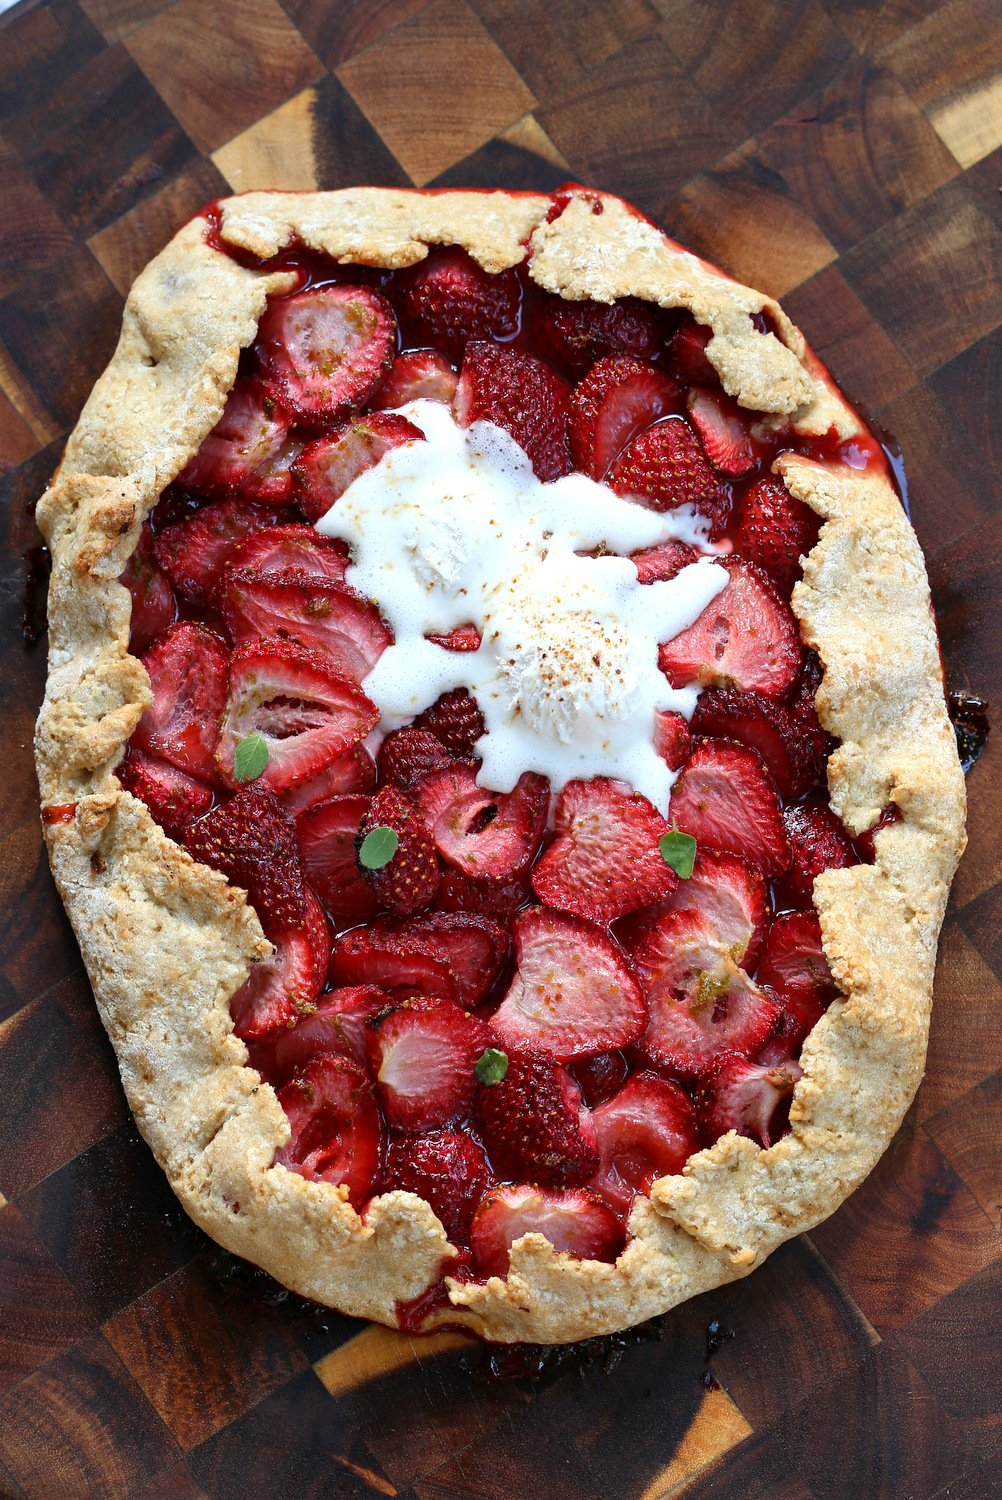 Vegan Strawberry Galette on wood board